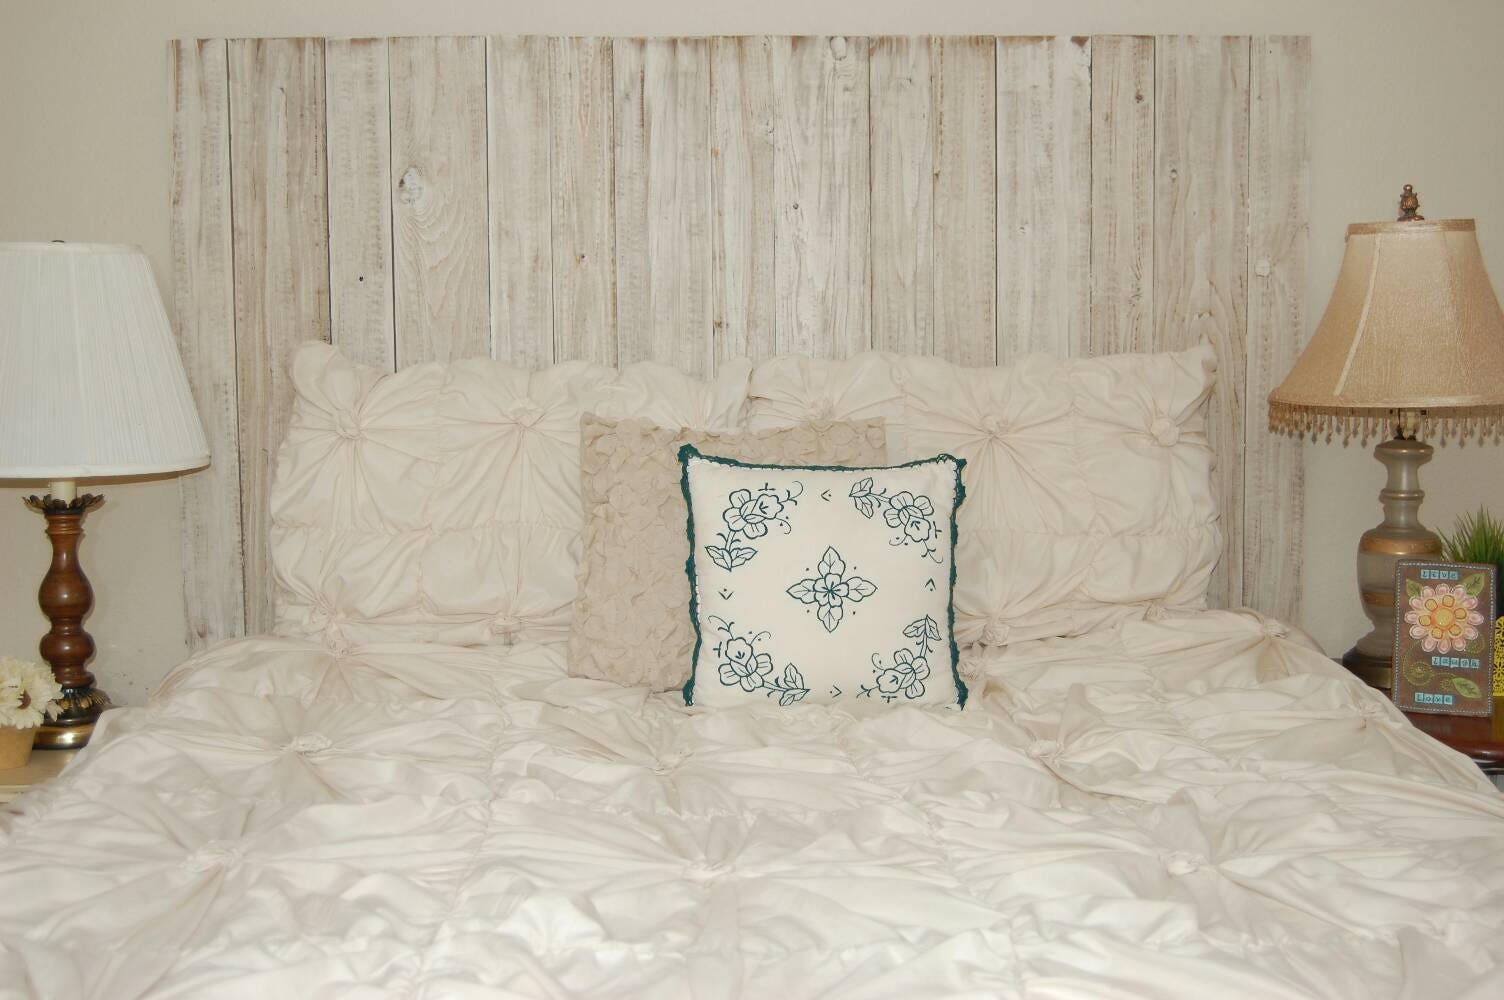 Off White Distressed Color Barn Walls Queen Headboard Lean